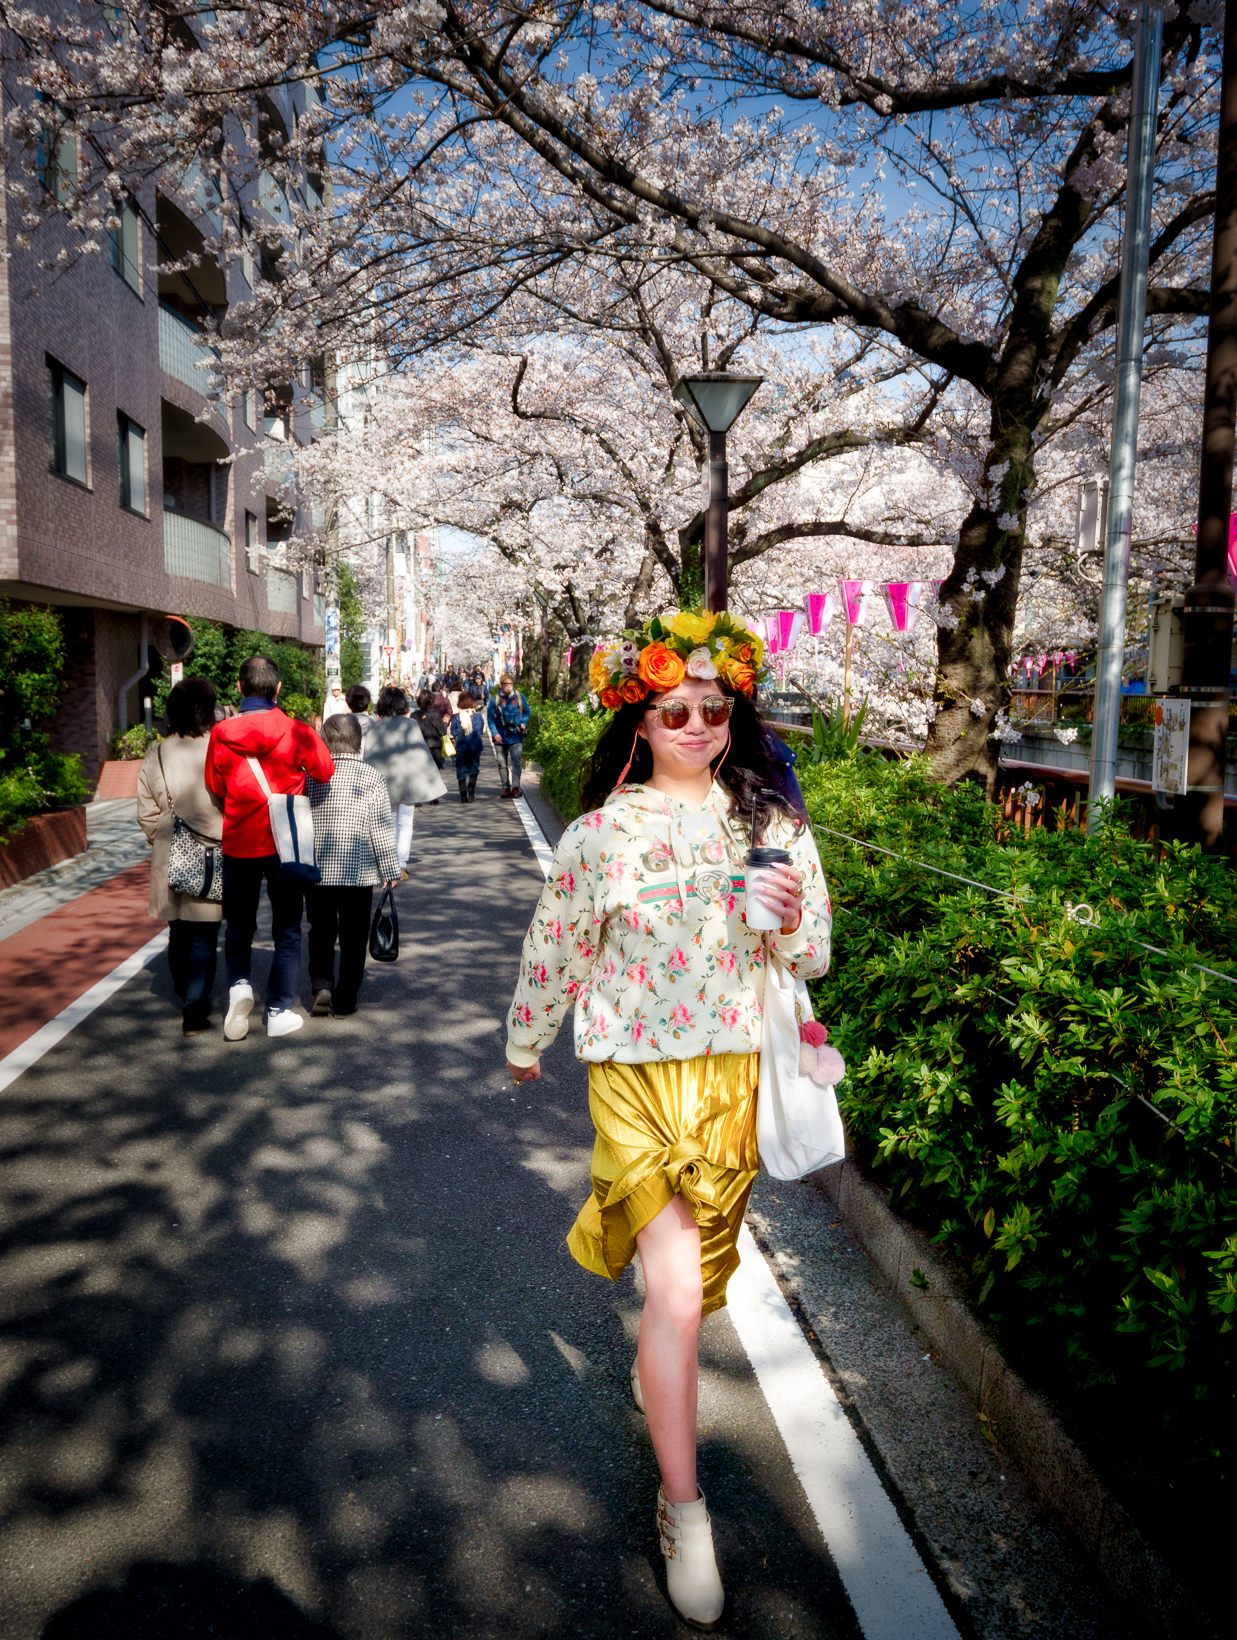 Tokyo Cherry trees in bloom ... and strange people :-)...